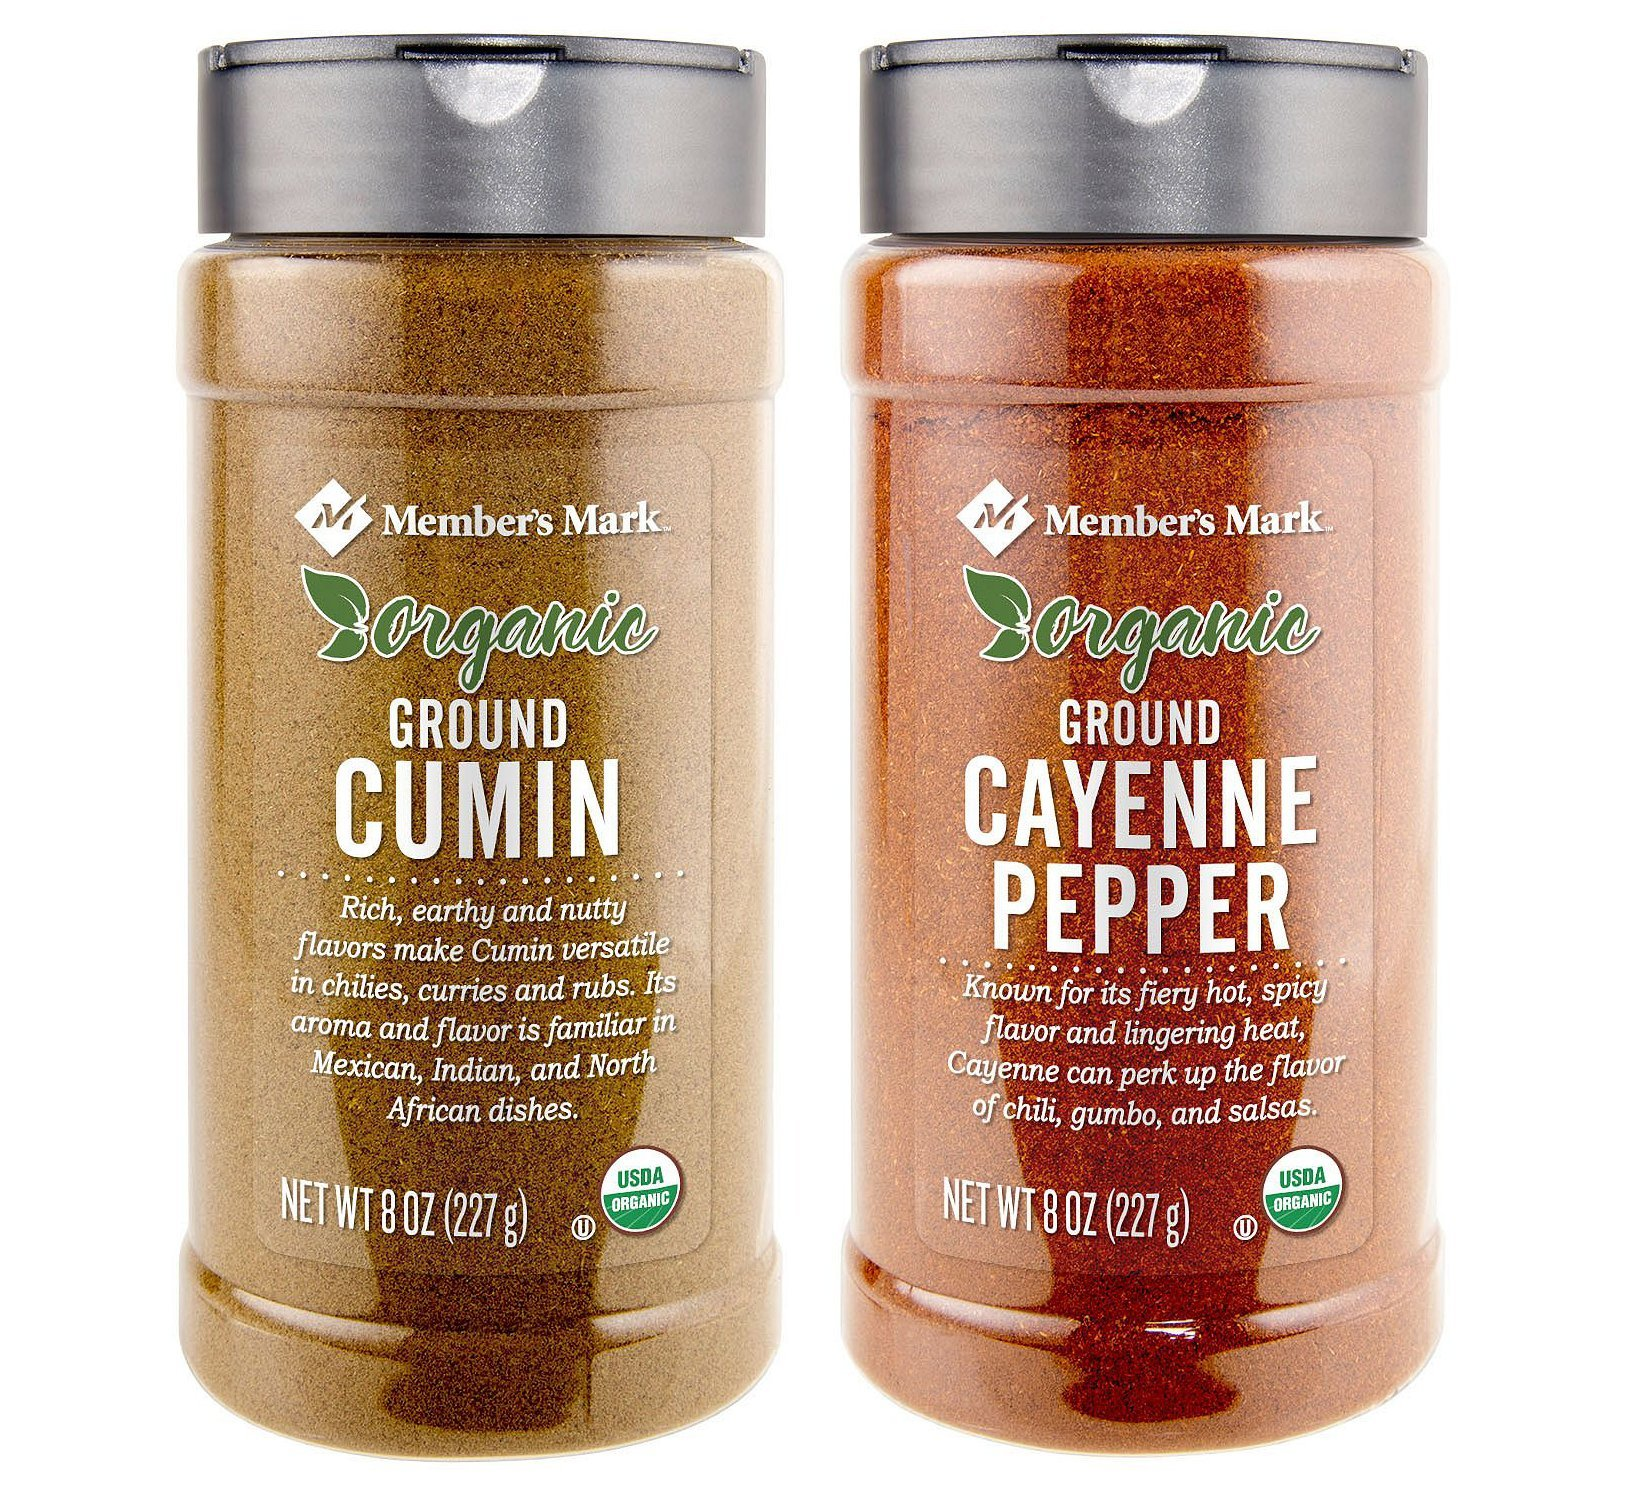 Organic Ground Cumin (8 oz.) and Organic Ground Cayenne Pepper (9 oz.) Bundle by Member's Mark (Image #1)